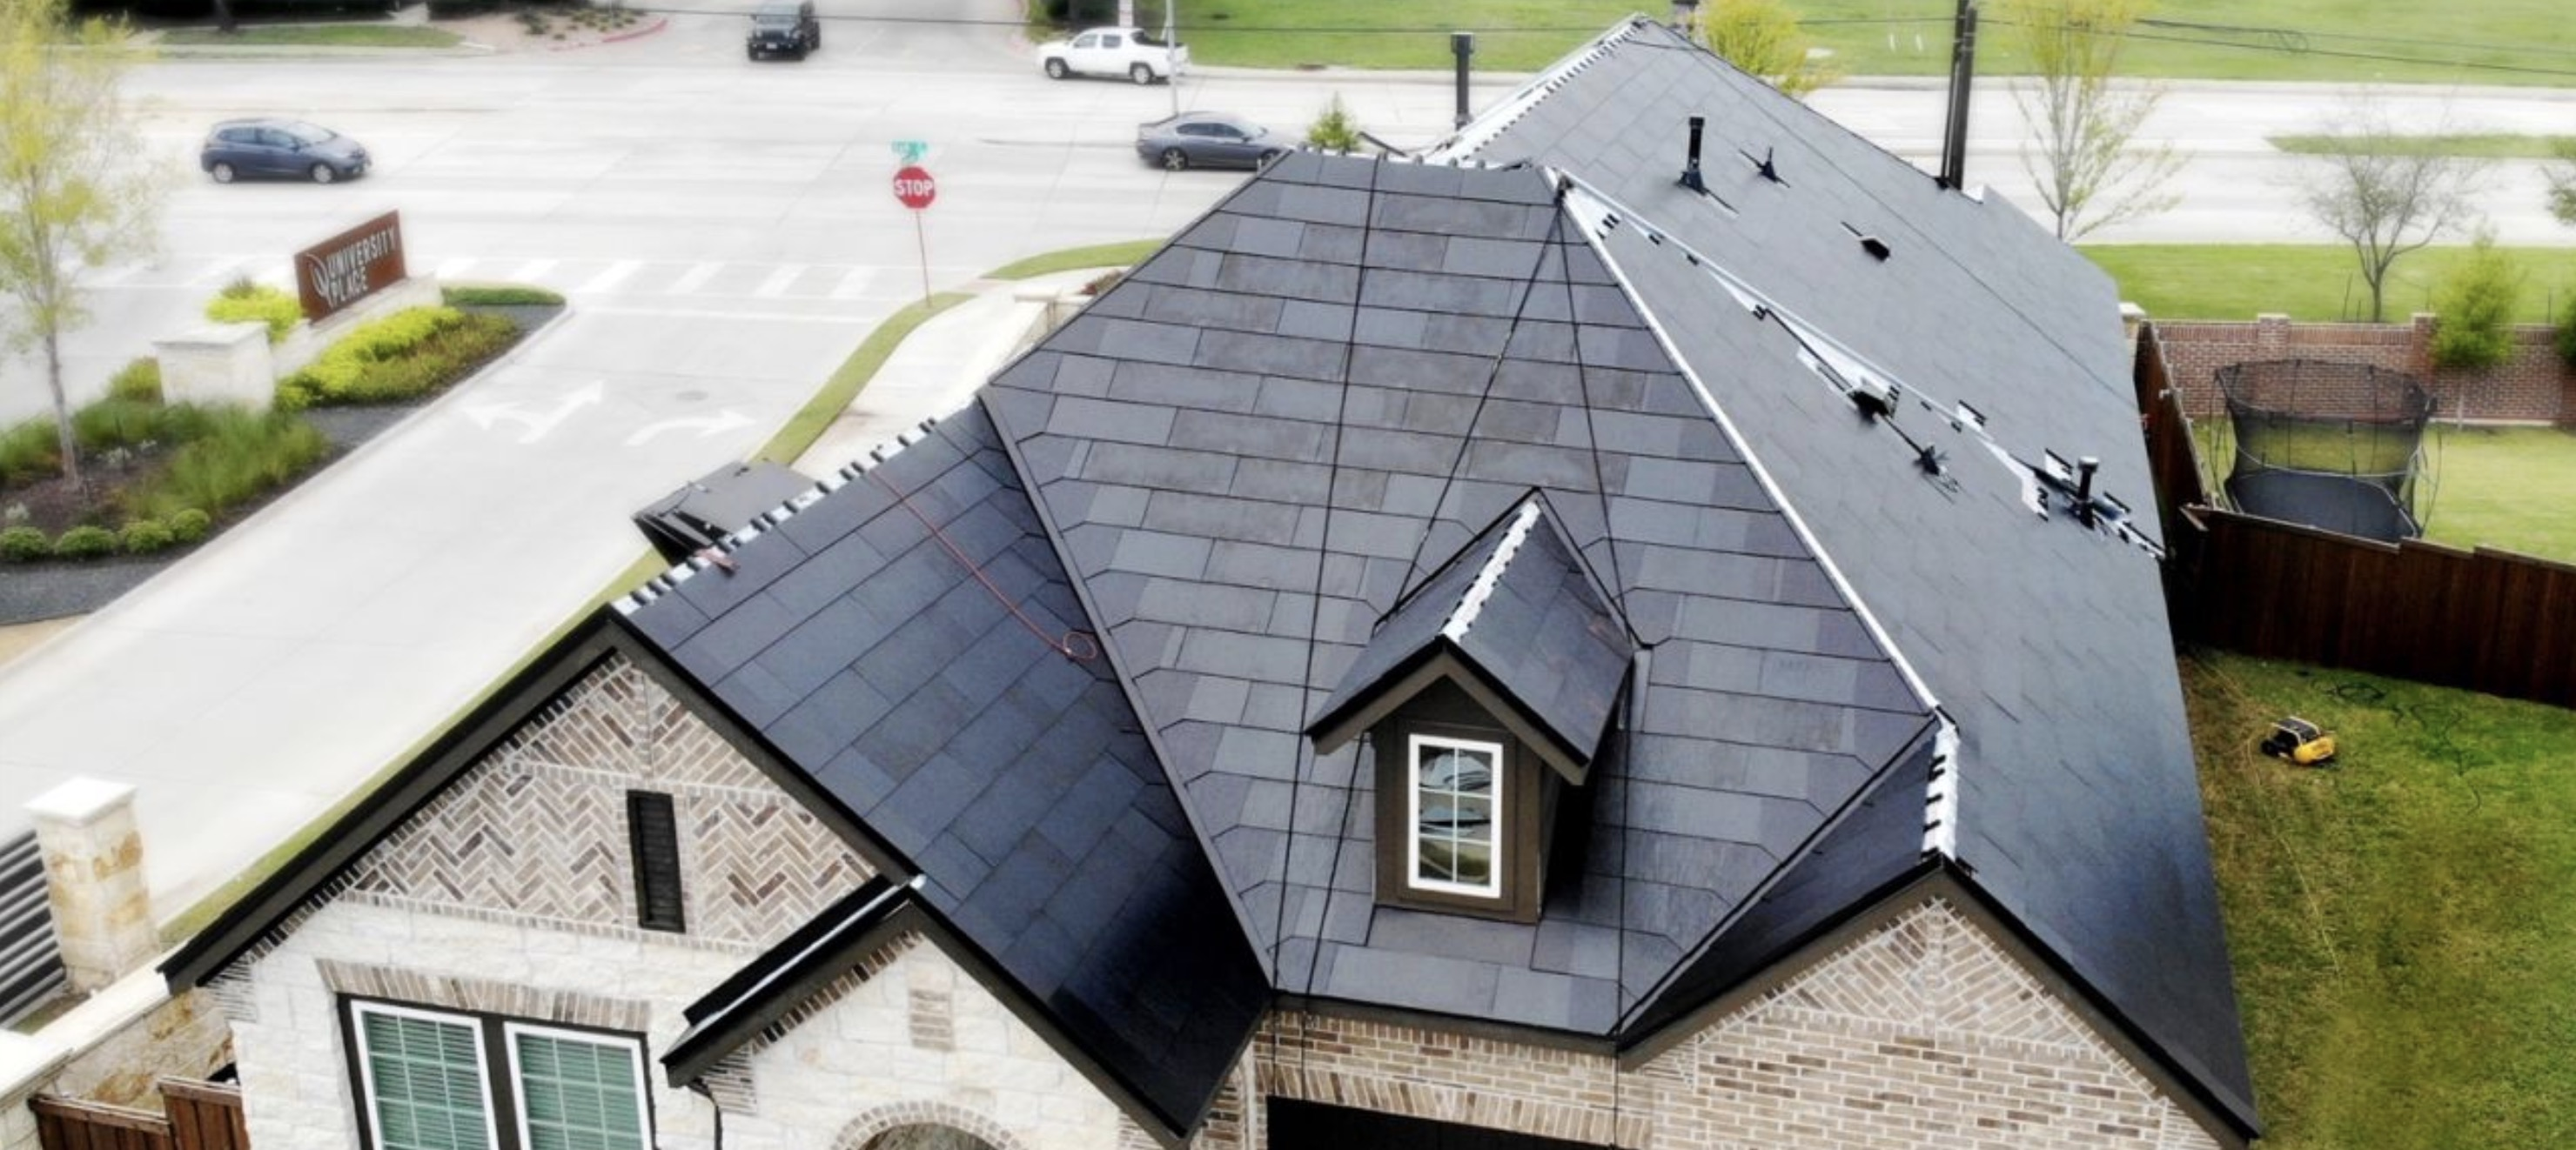 Tesla solar roof third party installer jpg?quality=82&strip=all.'